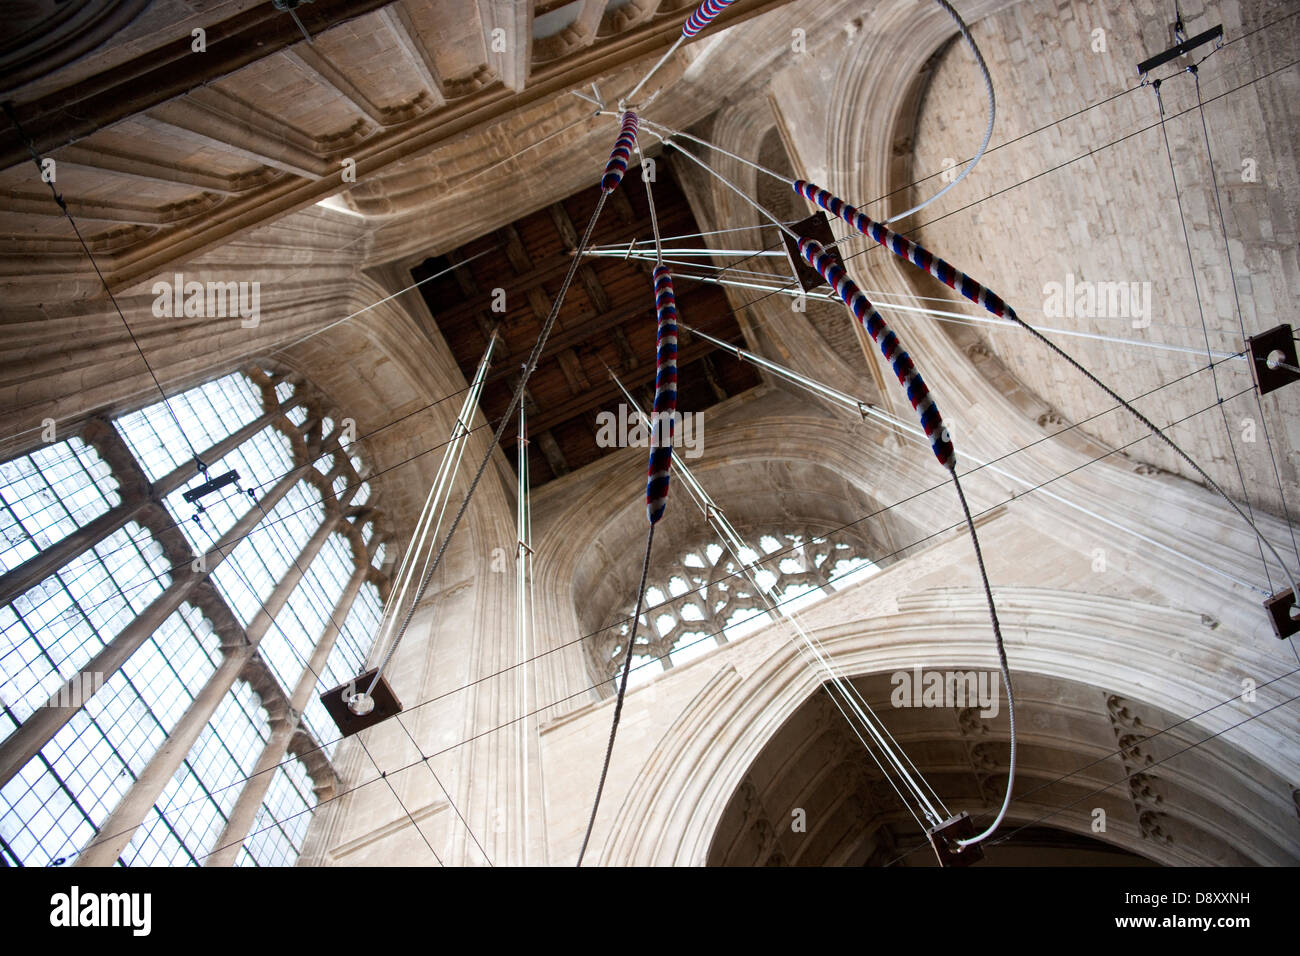 Bell Ringing Ropes Tower Crowland Abbey - Stock Image